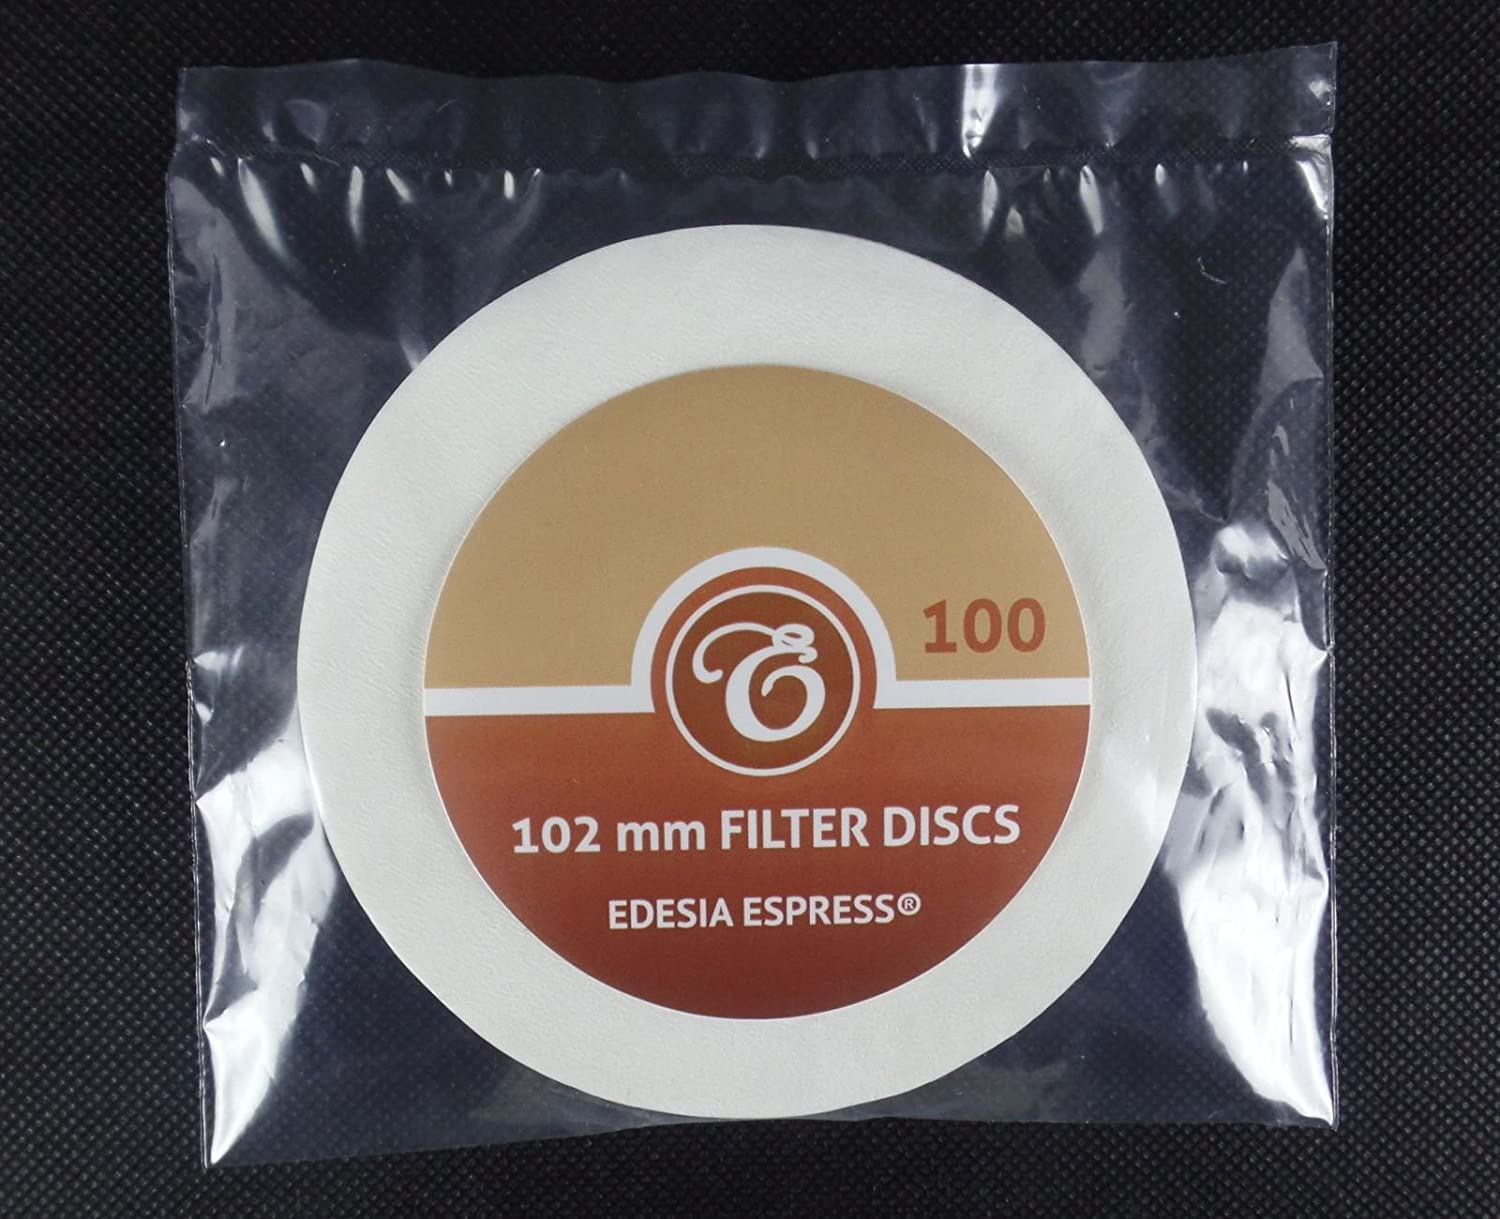 100 Filters Paper Discs For Espro Travel Press By Edesia Espress Hario Filter Vcf 02 100mk Kitchen Home